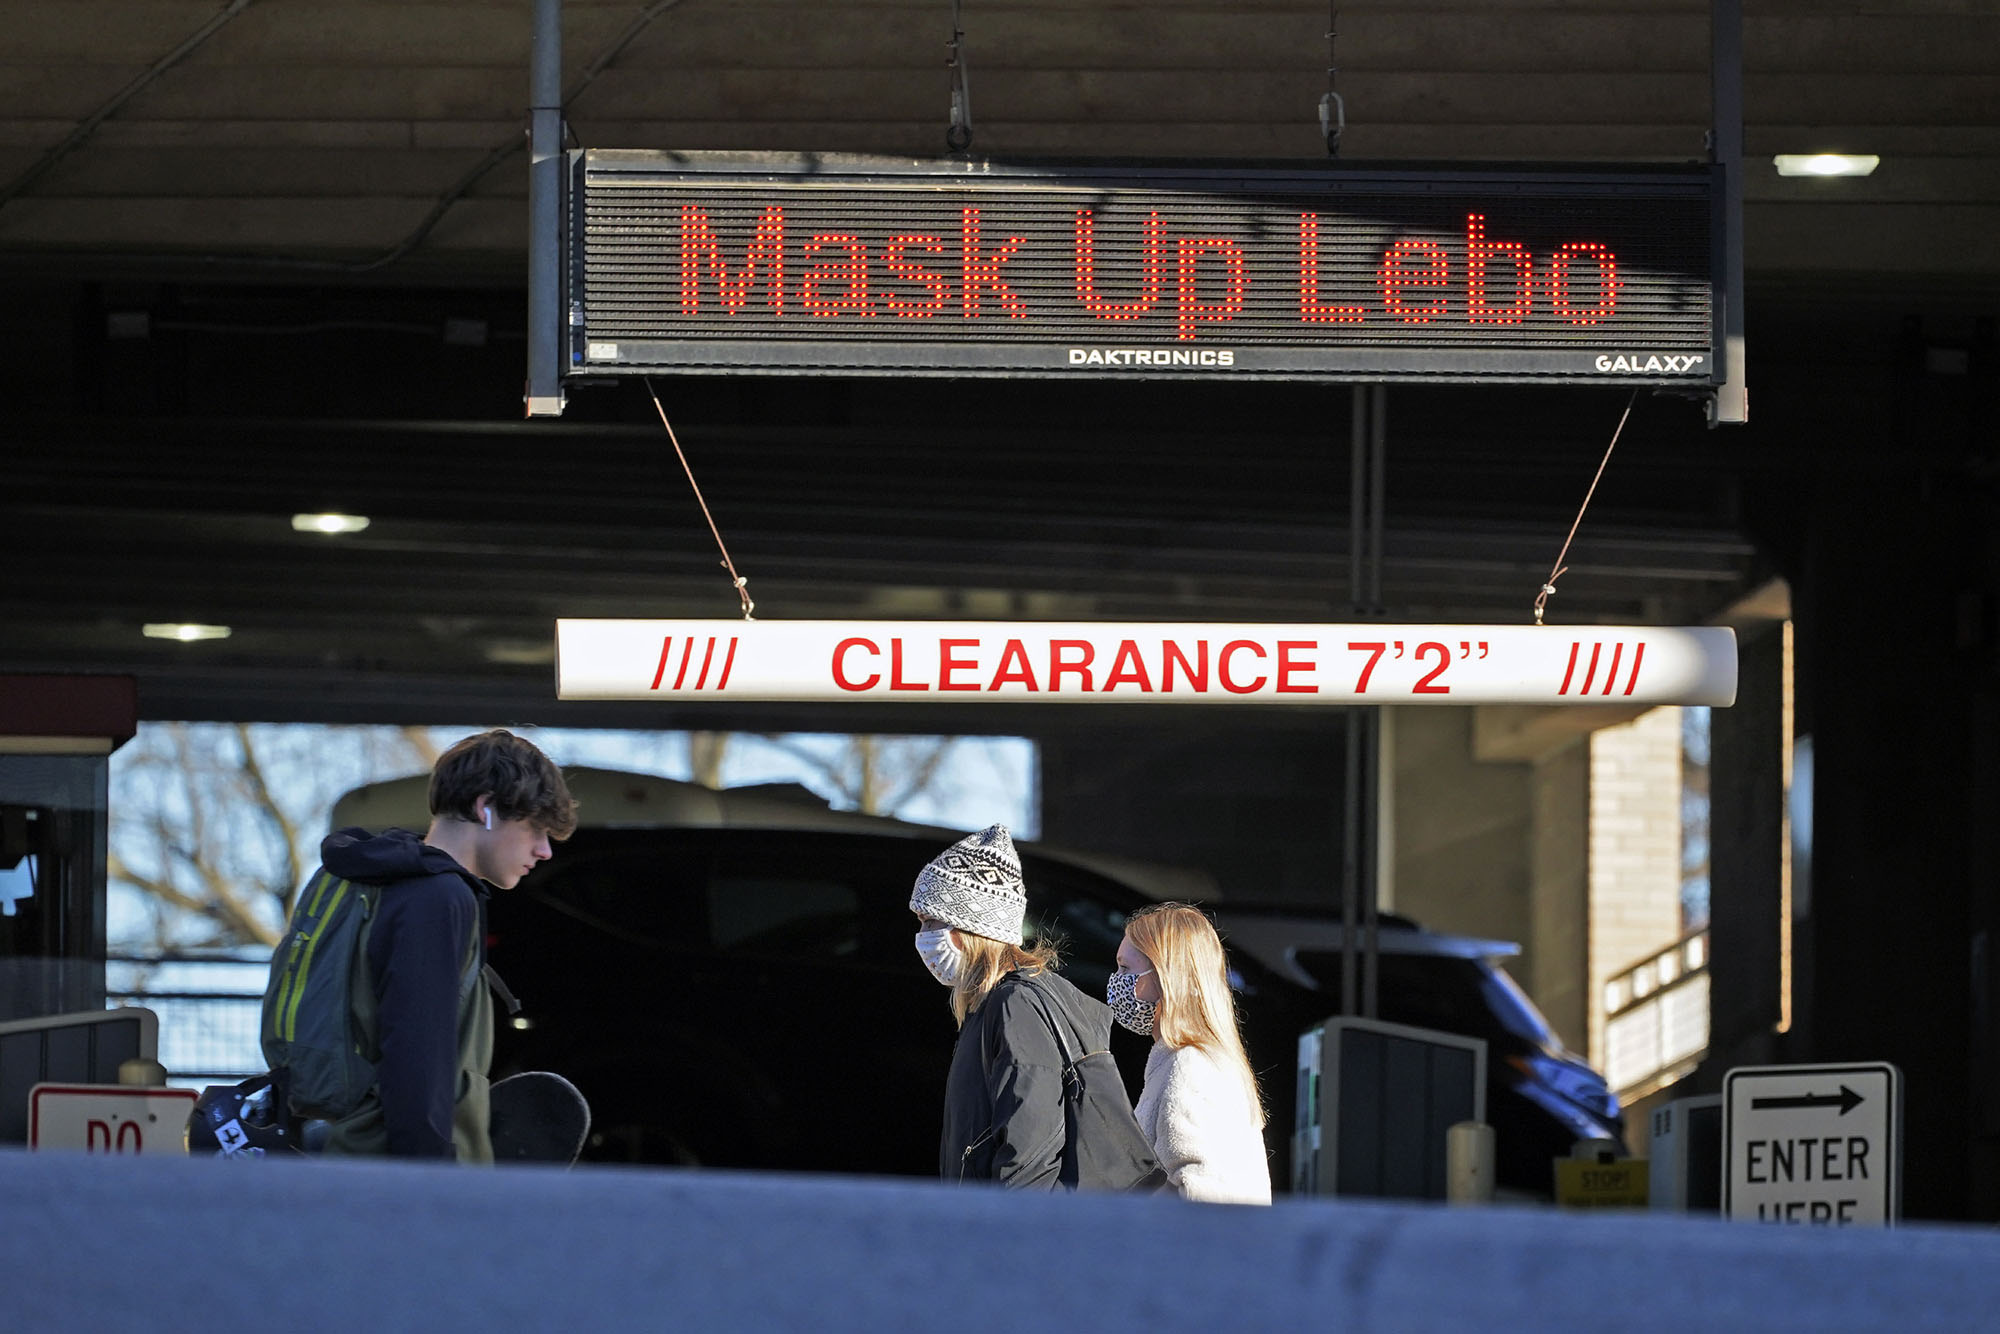 Pedestrians walk past a sign on a parking garage in Mount Lebanon, Pennslyvania, reminding people to wear a mask, on Wednesday, November 18.